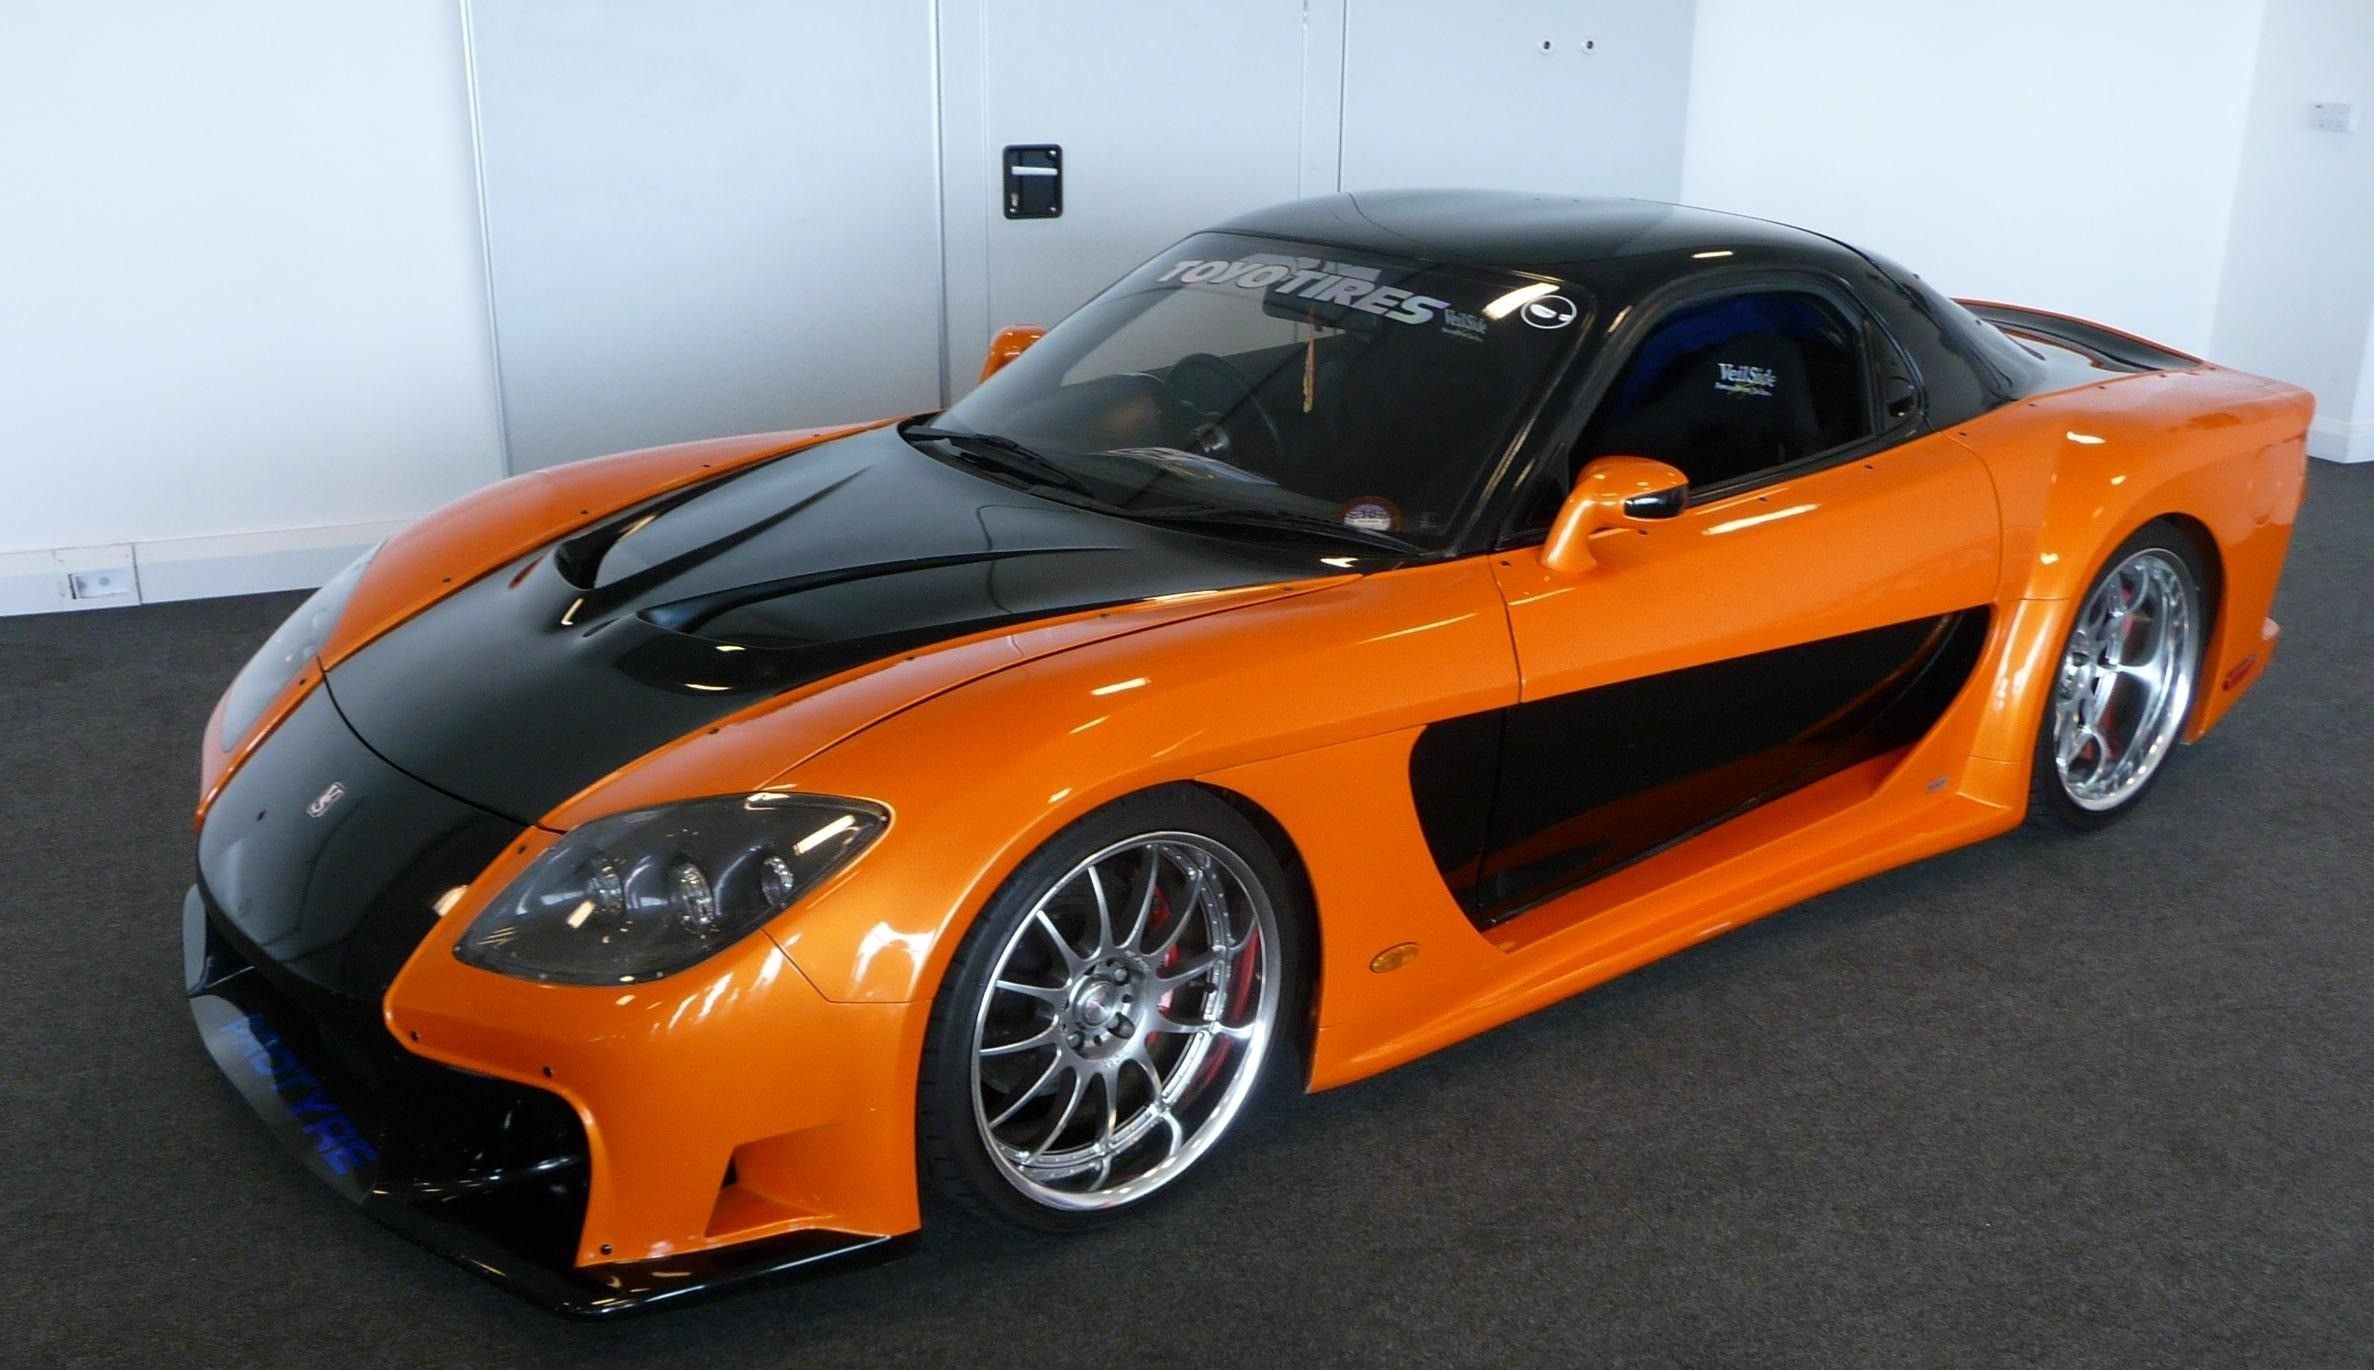 Toyota Supra I love this car but have never liked orange so I